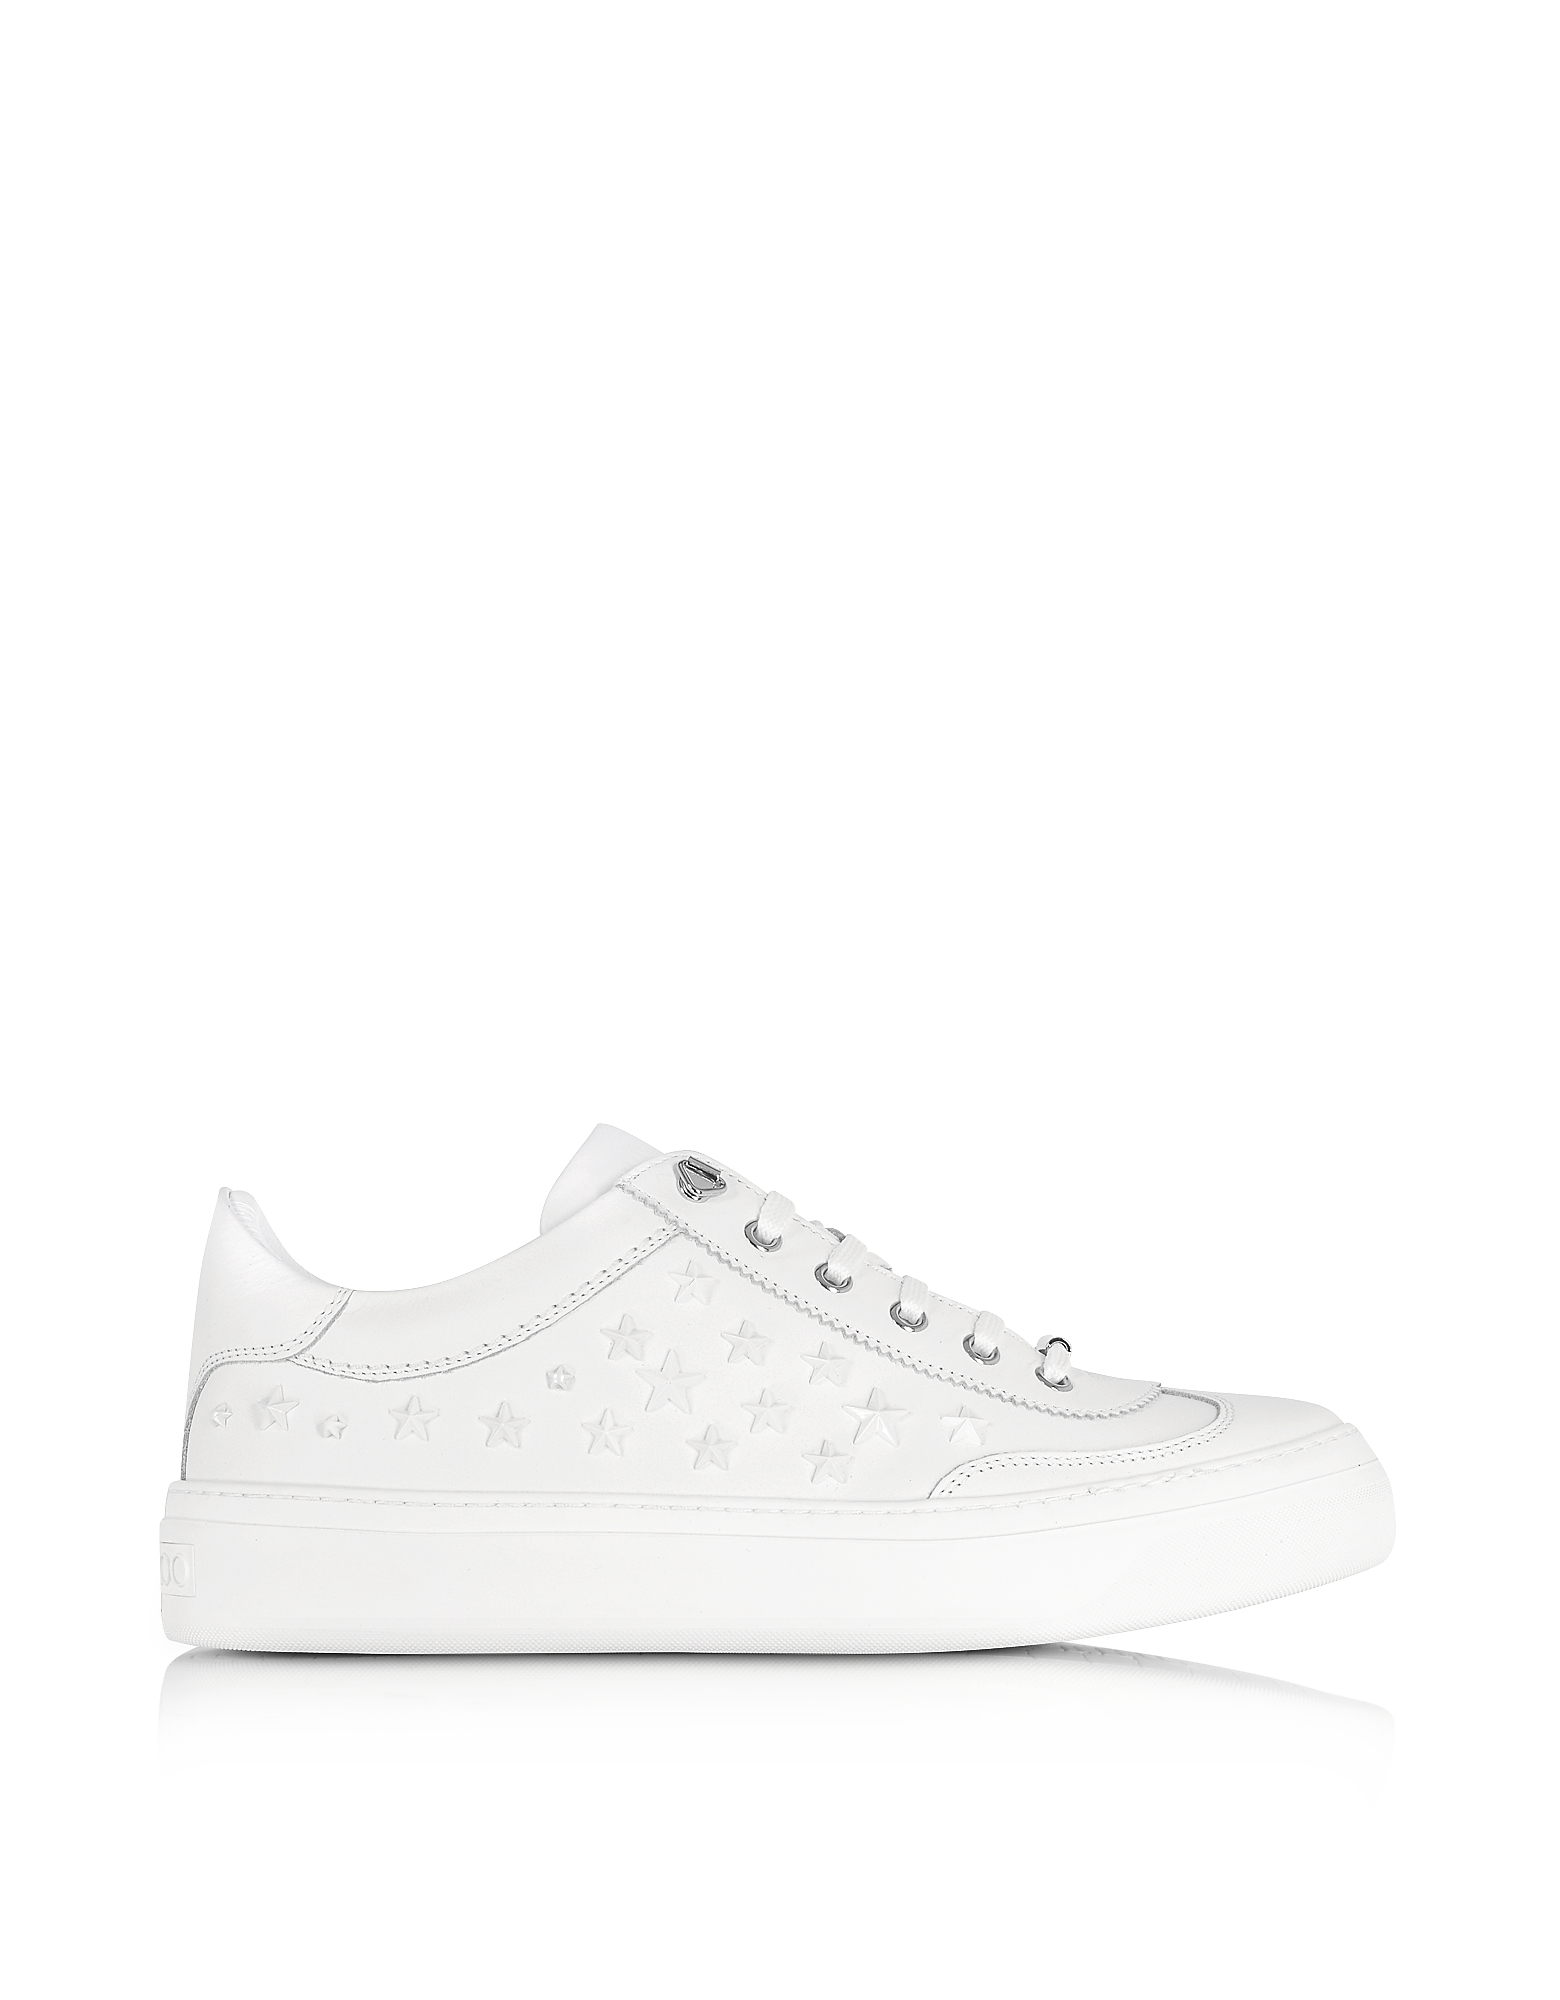 Jimmy Choo Shoes, Ace Sport Ultra White Leather w/Mixed Stars Low Top Sneakers